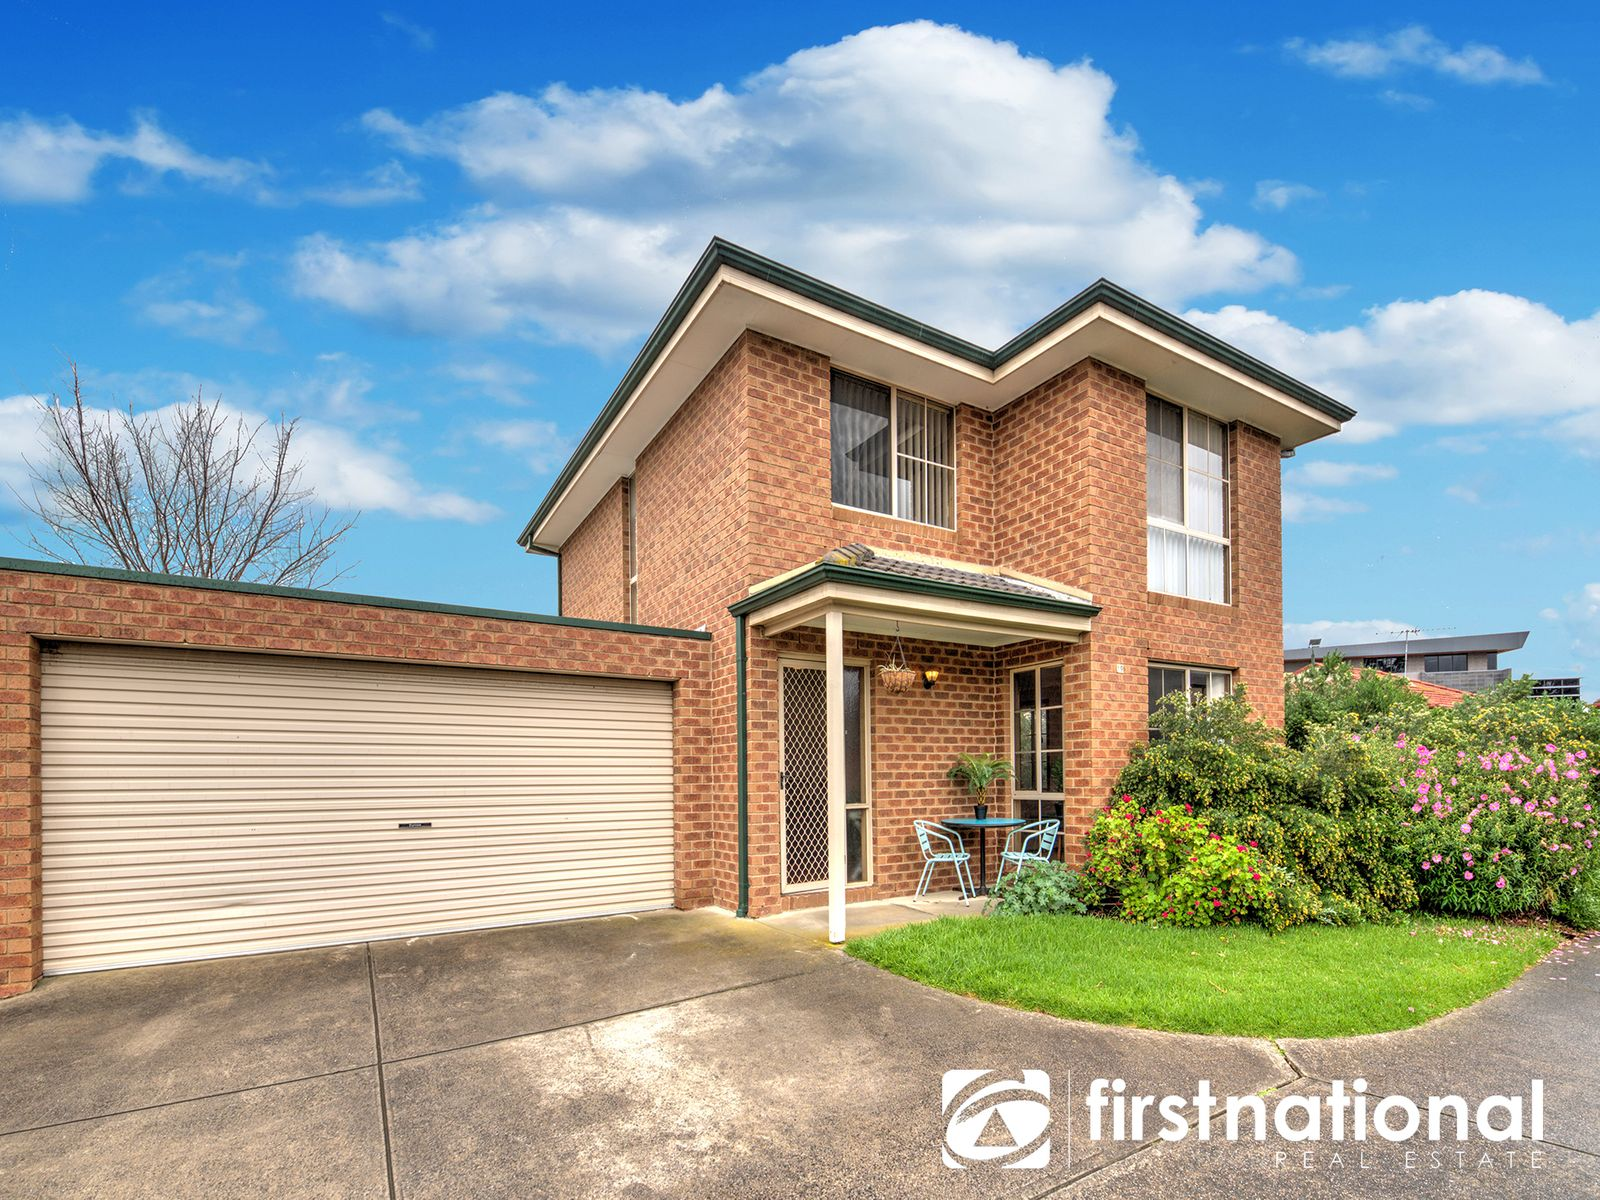 19/44 King Street, Pakenham, VIC 3810